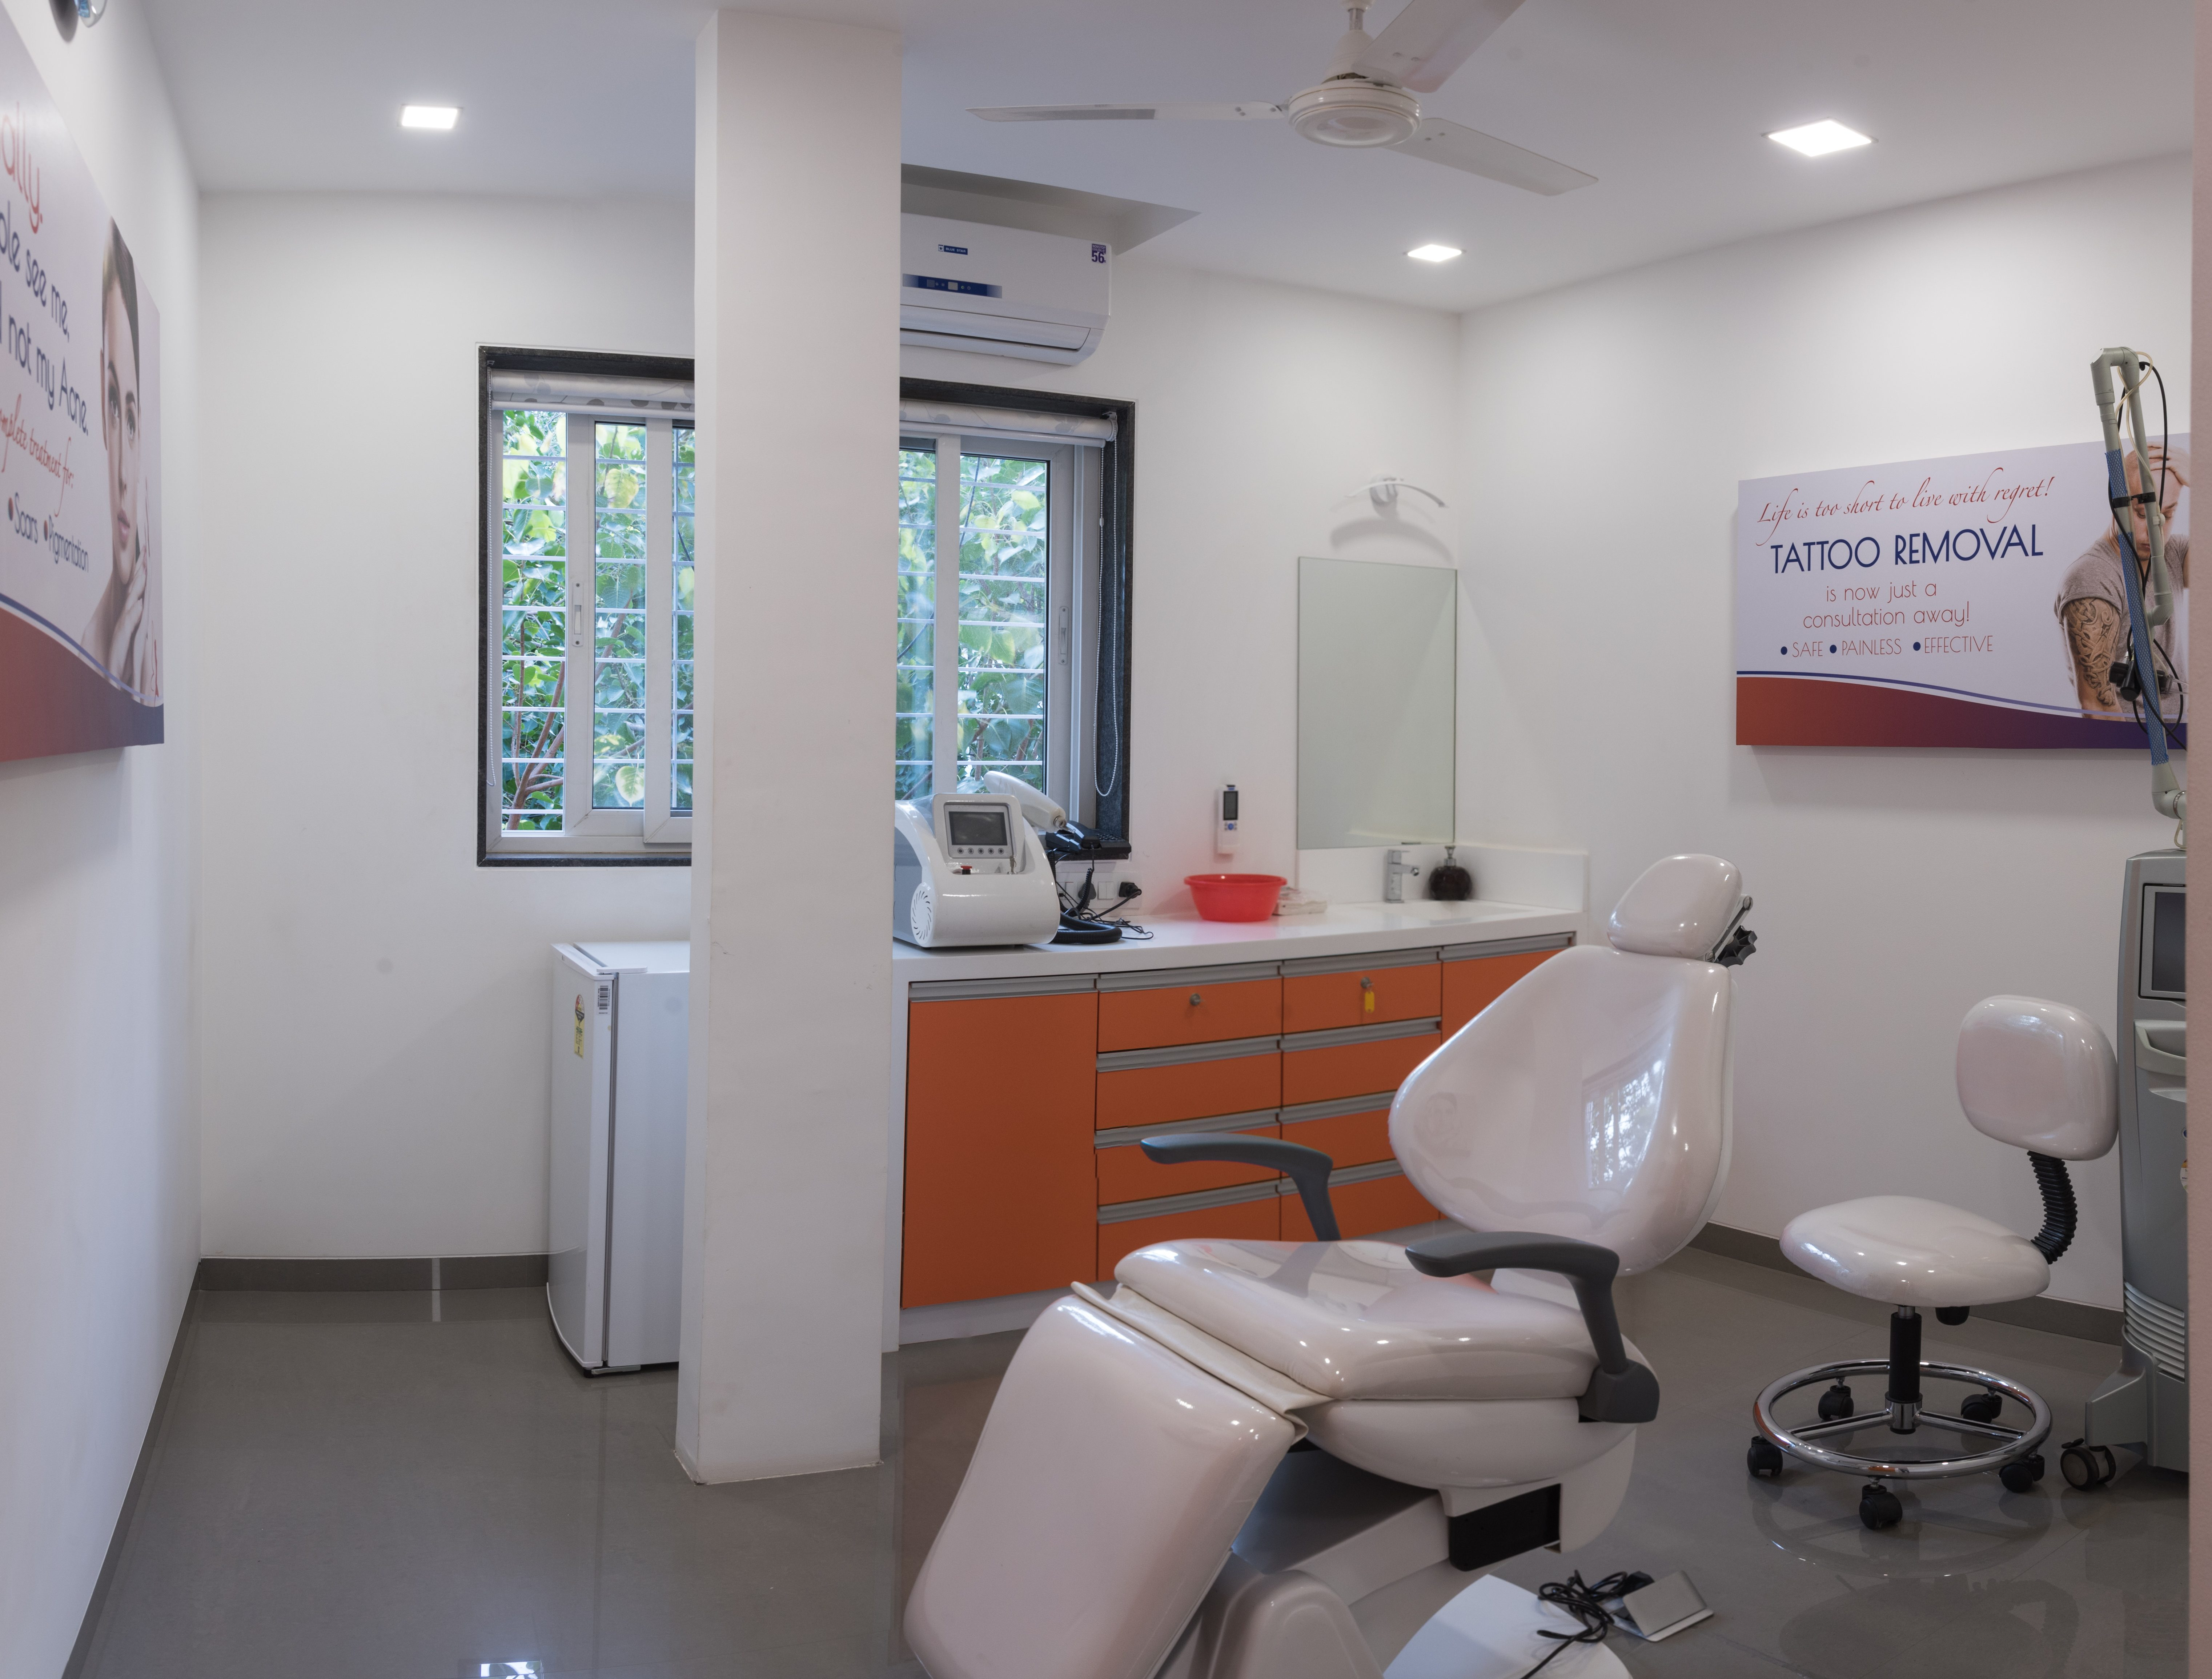 Treatment Room ( tatto removal)